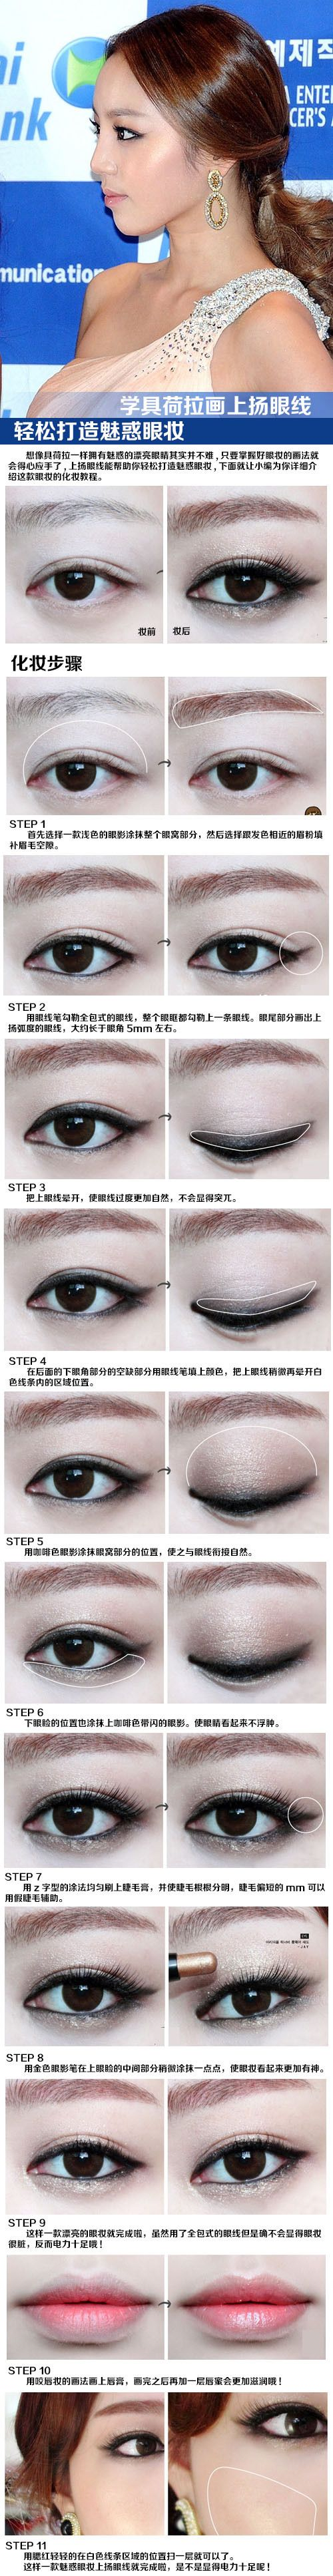 Goo Ha Ra party makeup look . Korean makeup . 구하라 가라